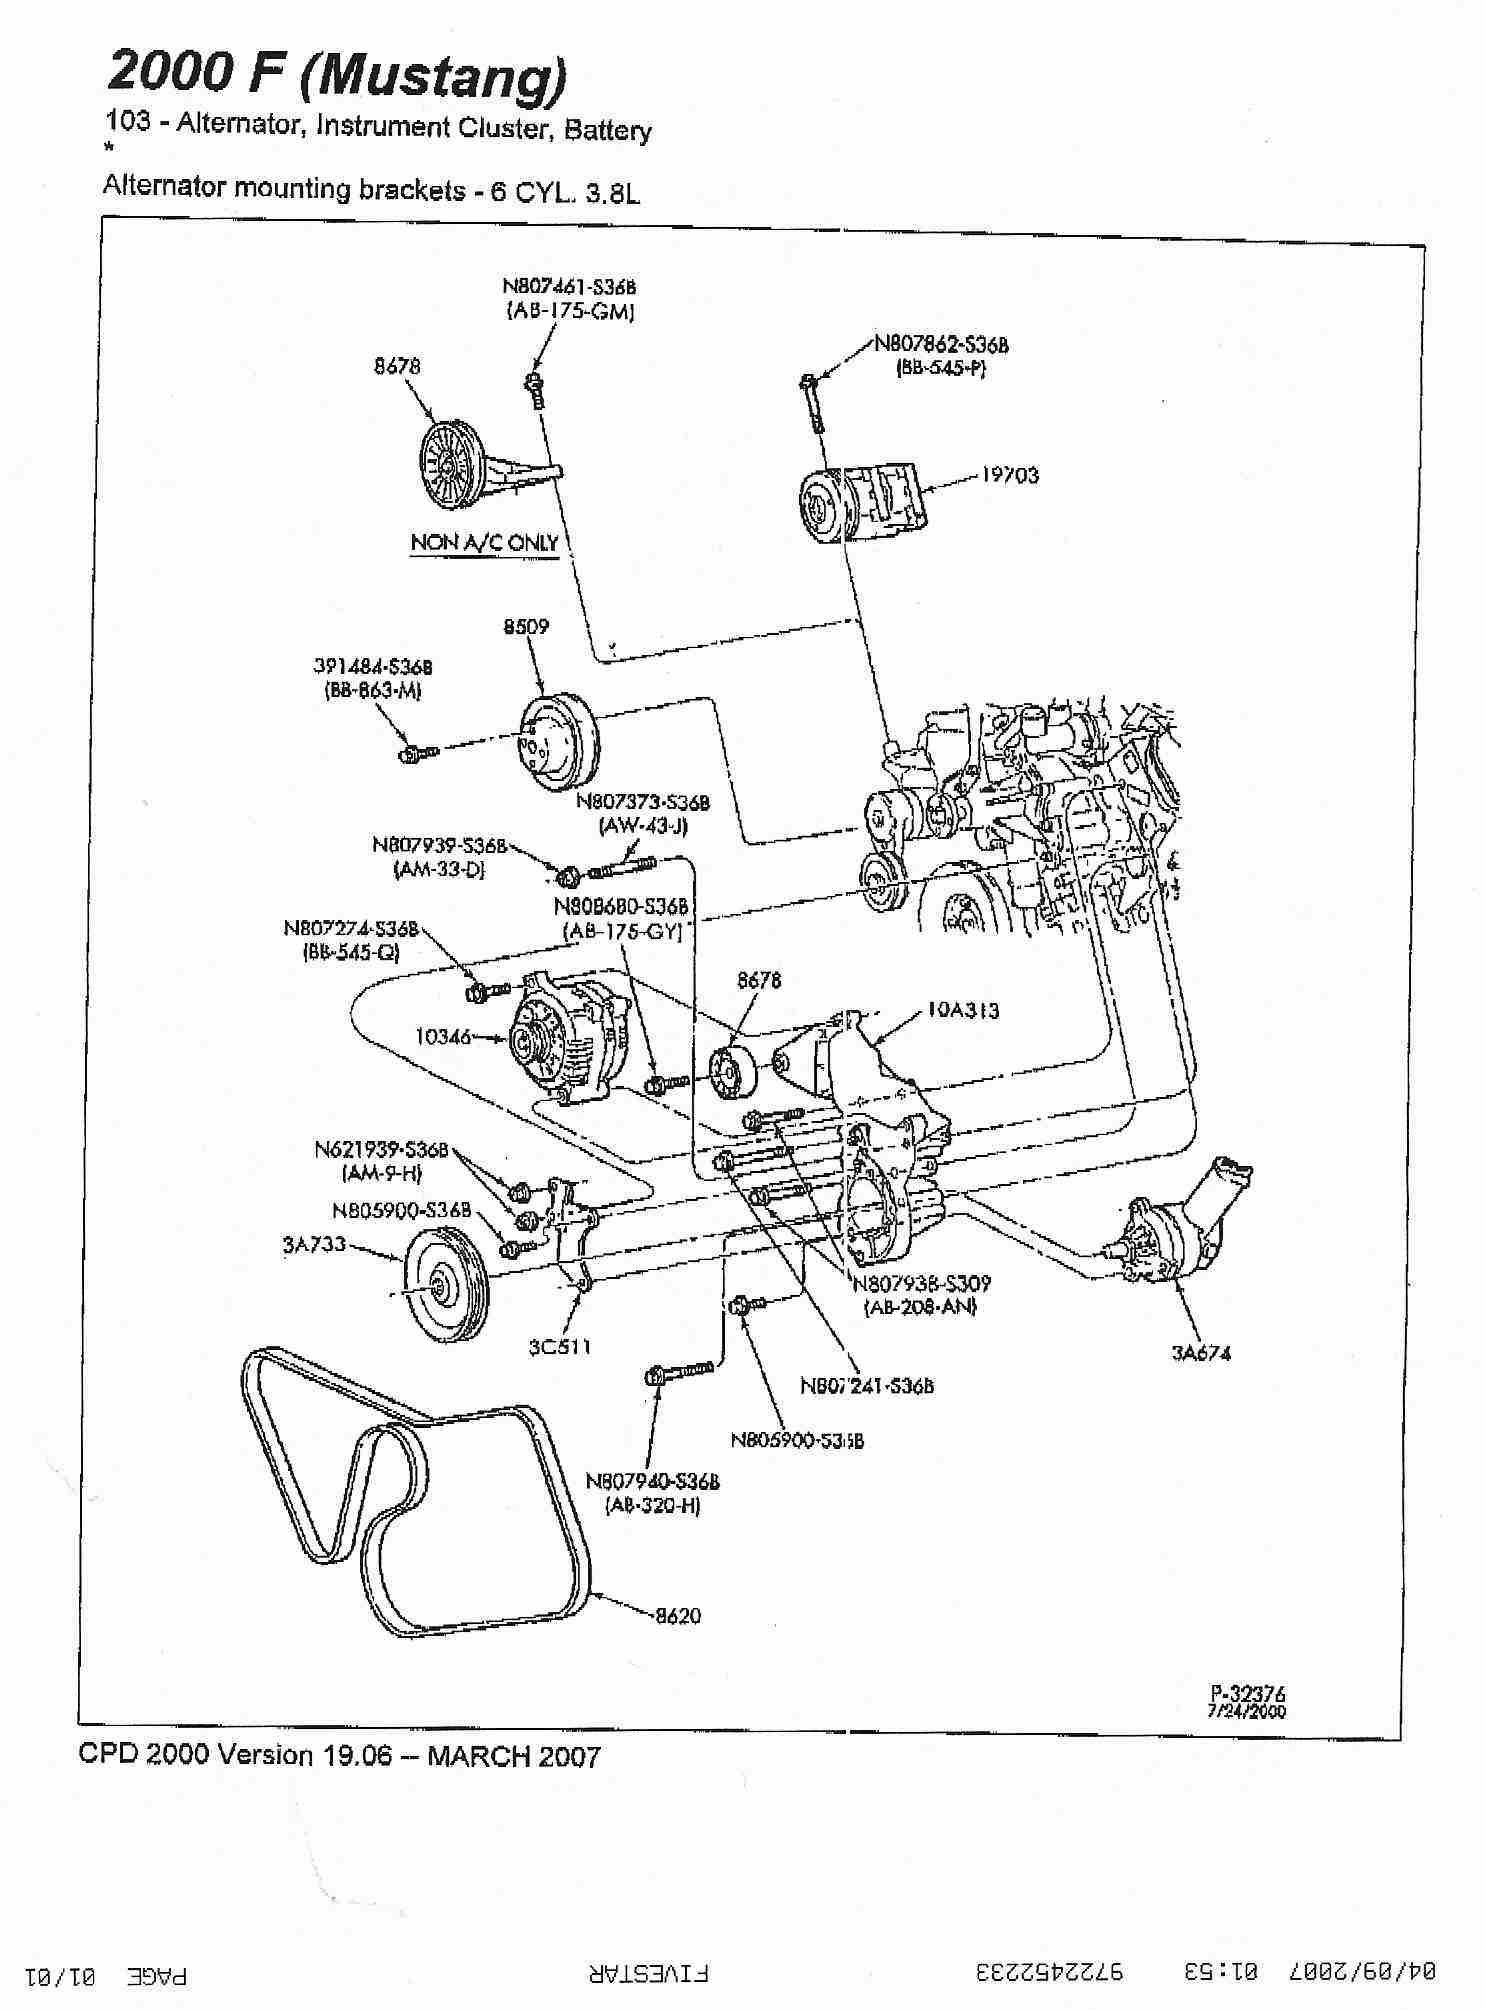 Fuse Box Diagram For 1999 Ford Mustang Wiring Library 2009 Gt Layout 4 6l Engine Opinions About U2022 Rh Voterid Co